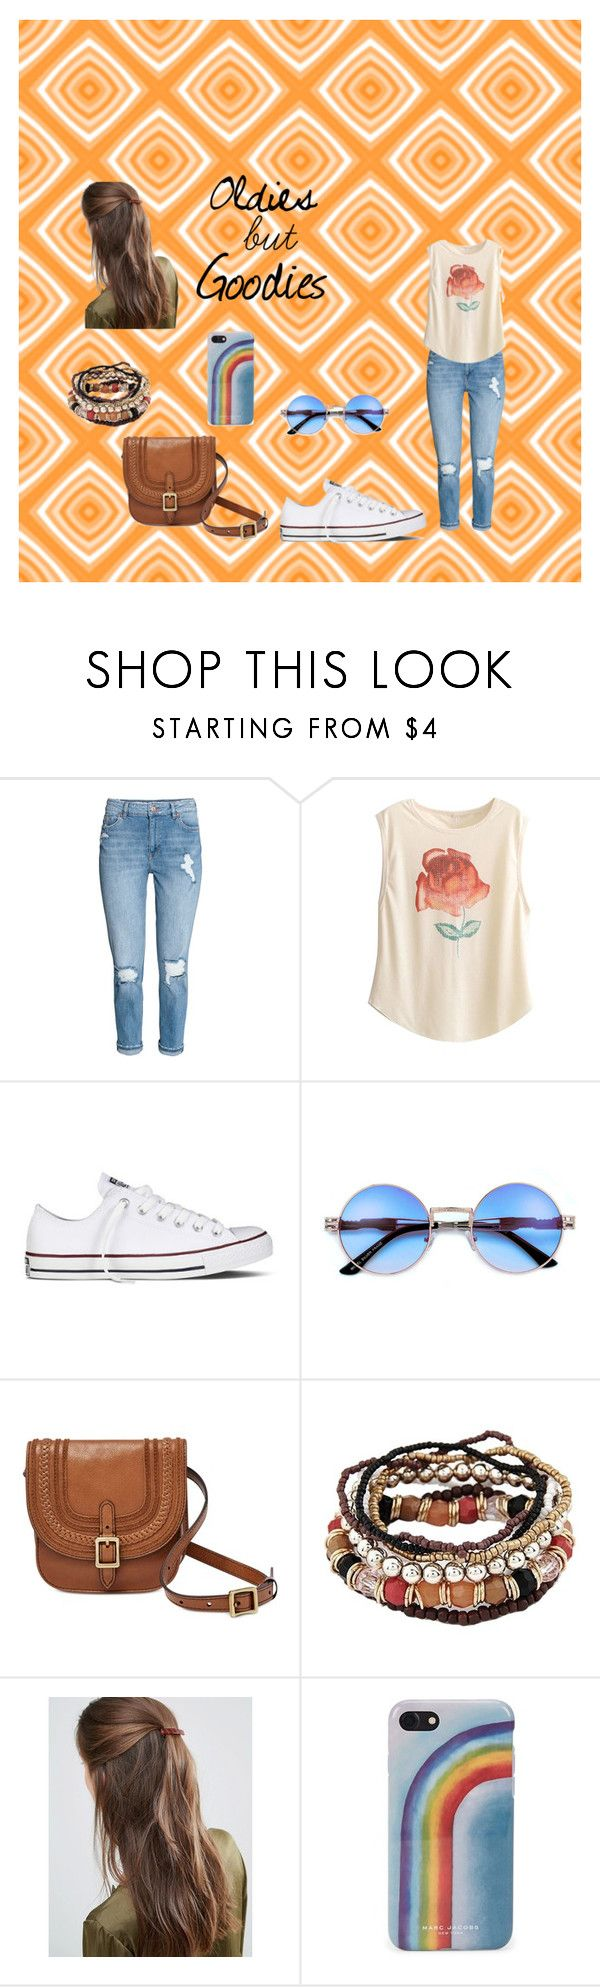 """oldies/ How to wear white converse"" by mathildepl07 on Polyvore featuring mode, Converse, FOSSIL, DesignB London, Marc Jacobs, denim, converse, roses, old et comeback"